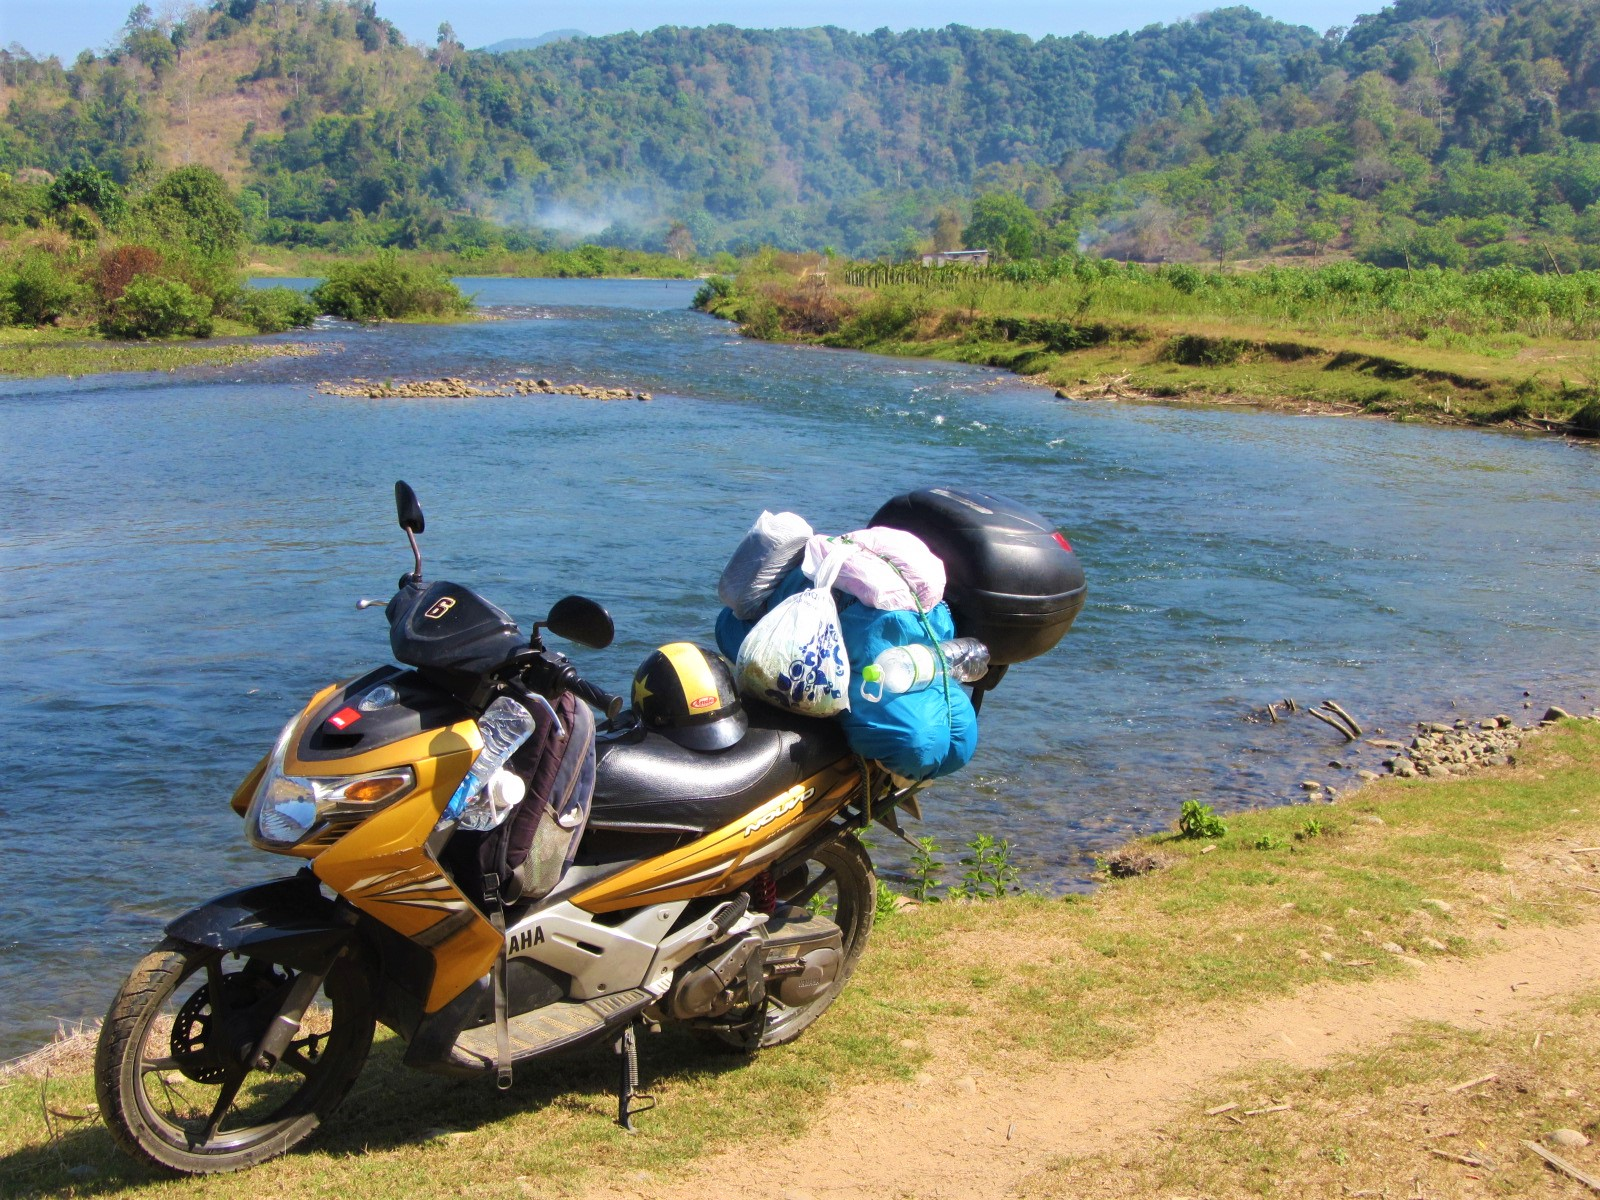 Scouting for campsites on dirt paths along the banks of the La Nga River, Central Highlands